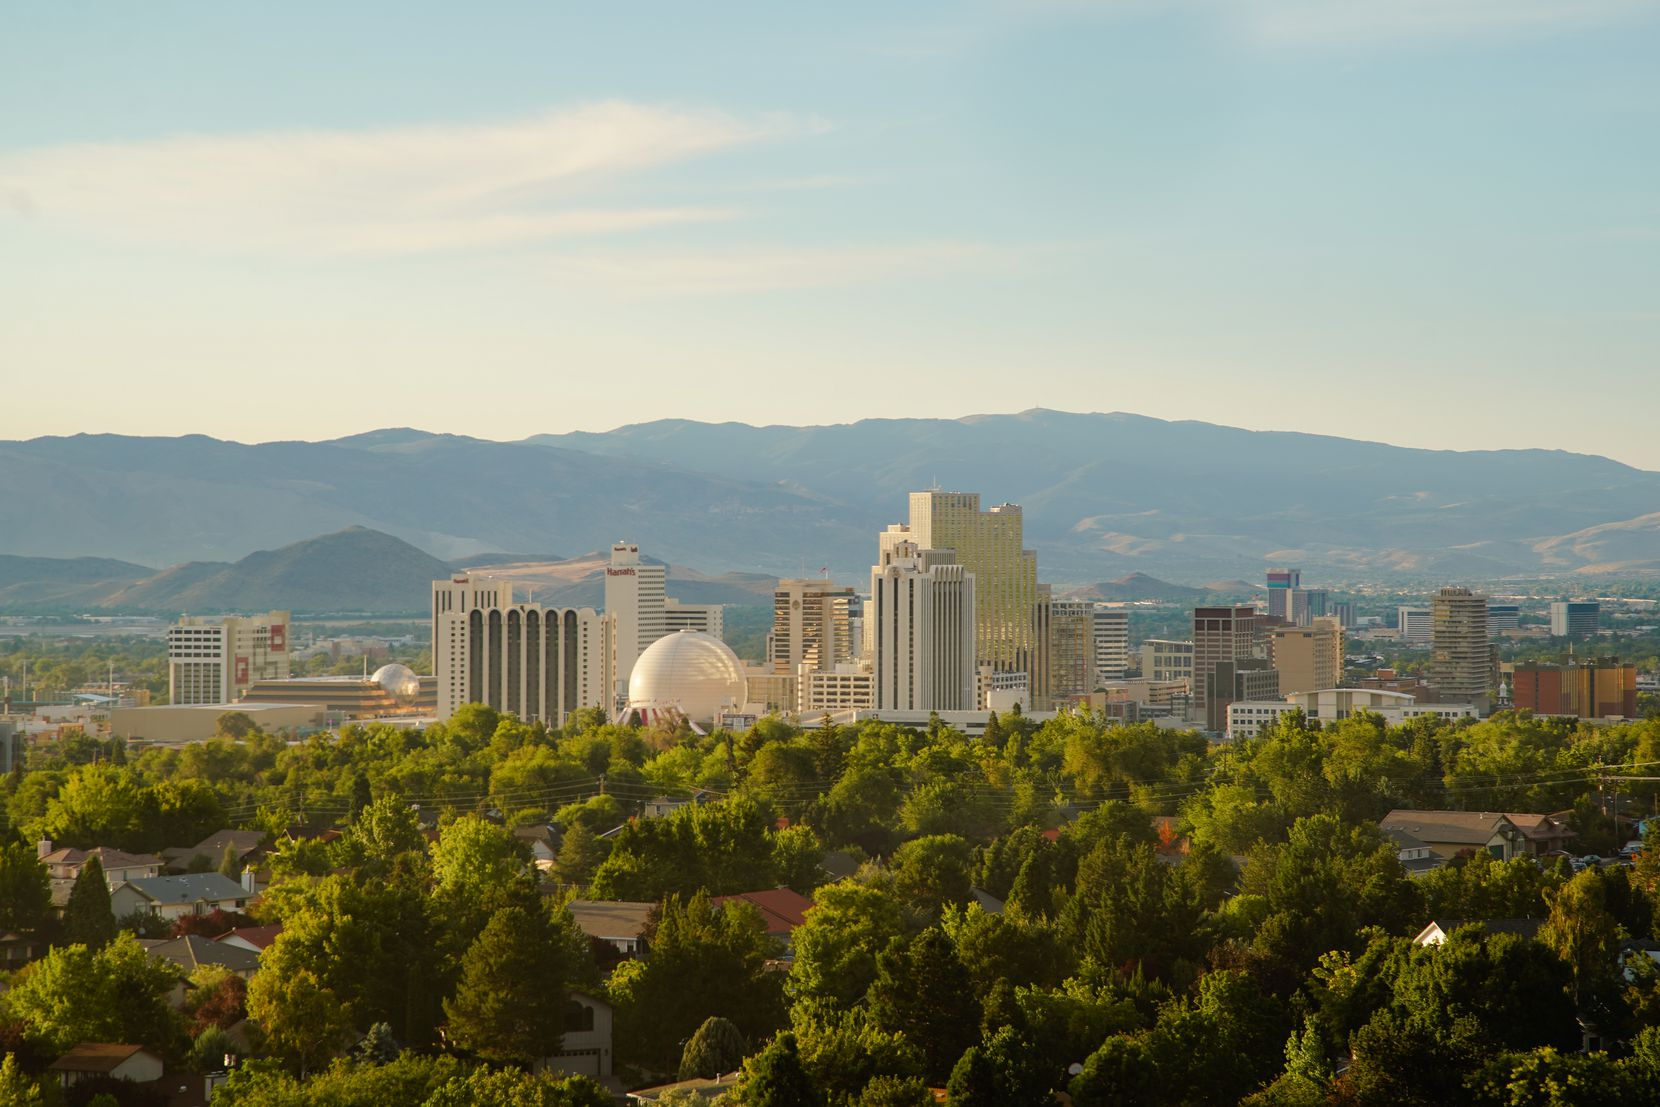 See a different side of Reno-Lake Tahoe during the fall season as you unwind and explore.